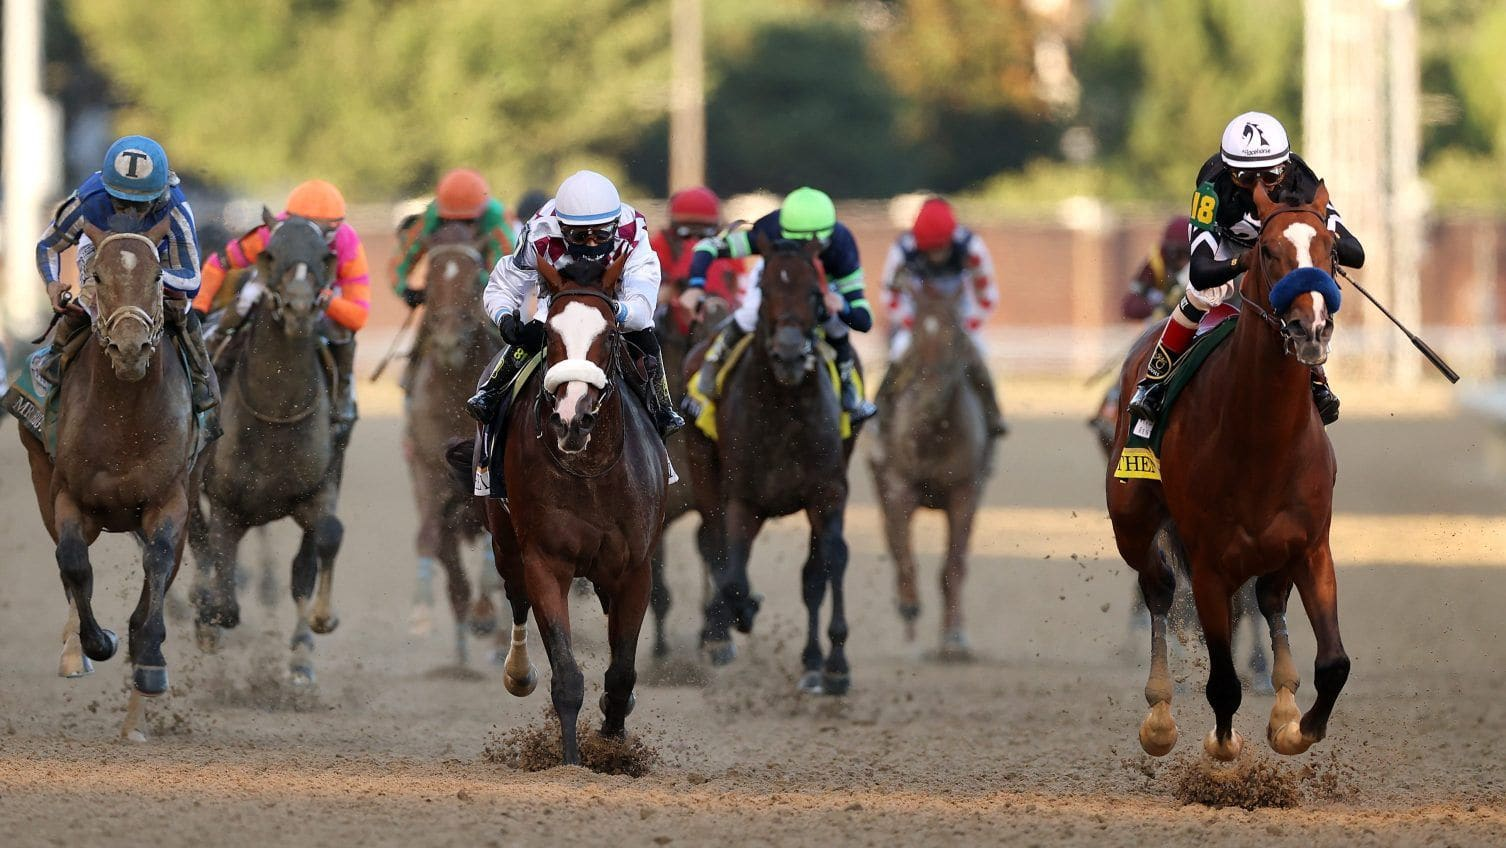 Authentic wins 2020 Kentucky Derby, ends Tiz the Law's Triple Crown hopes